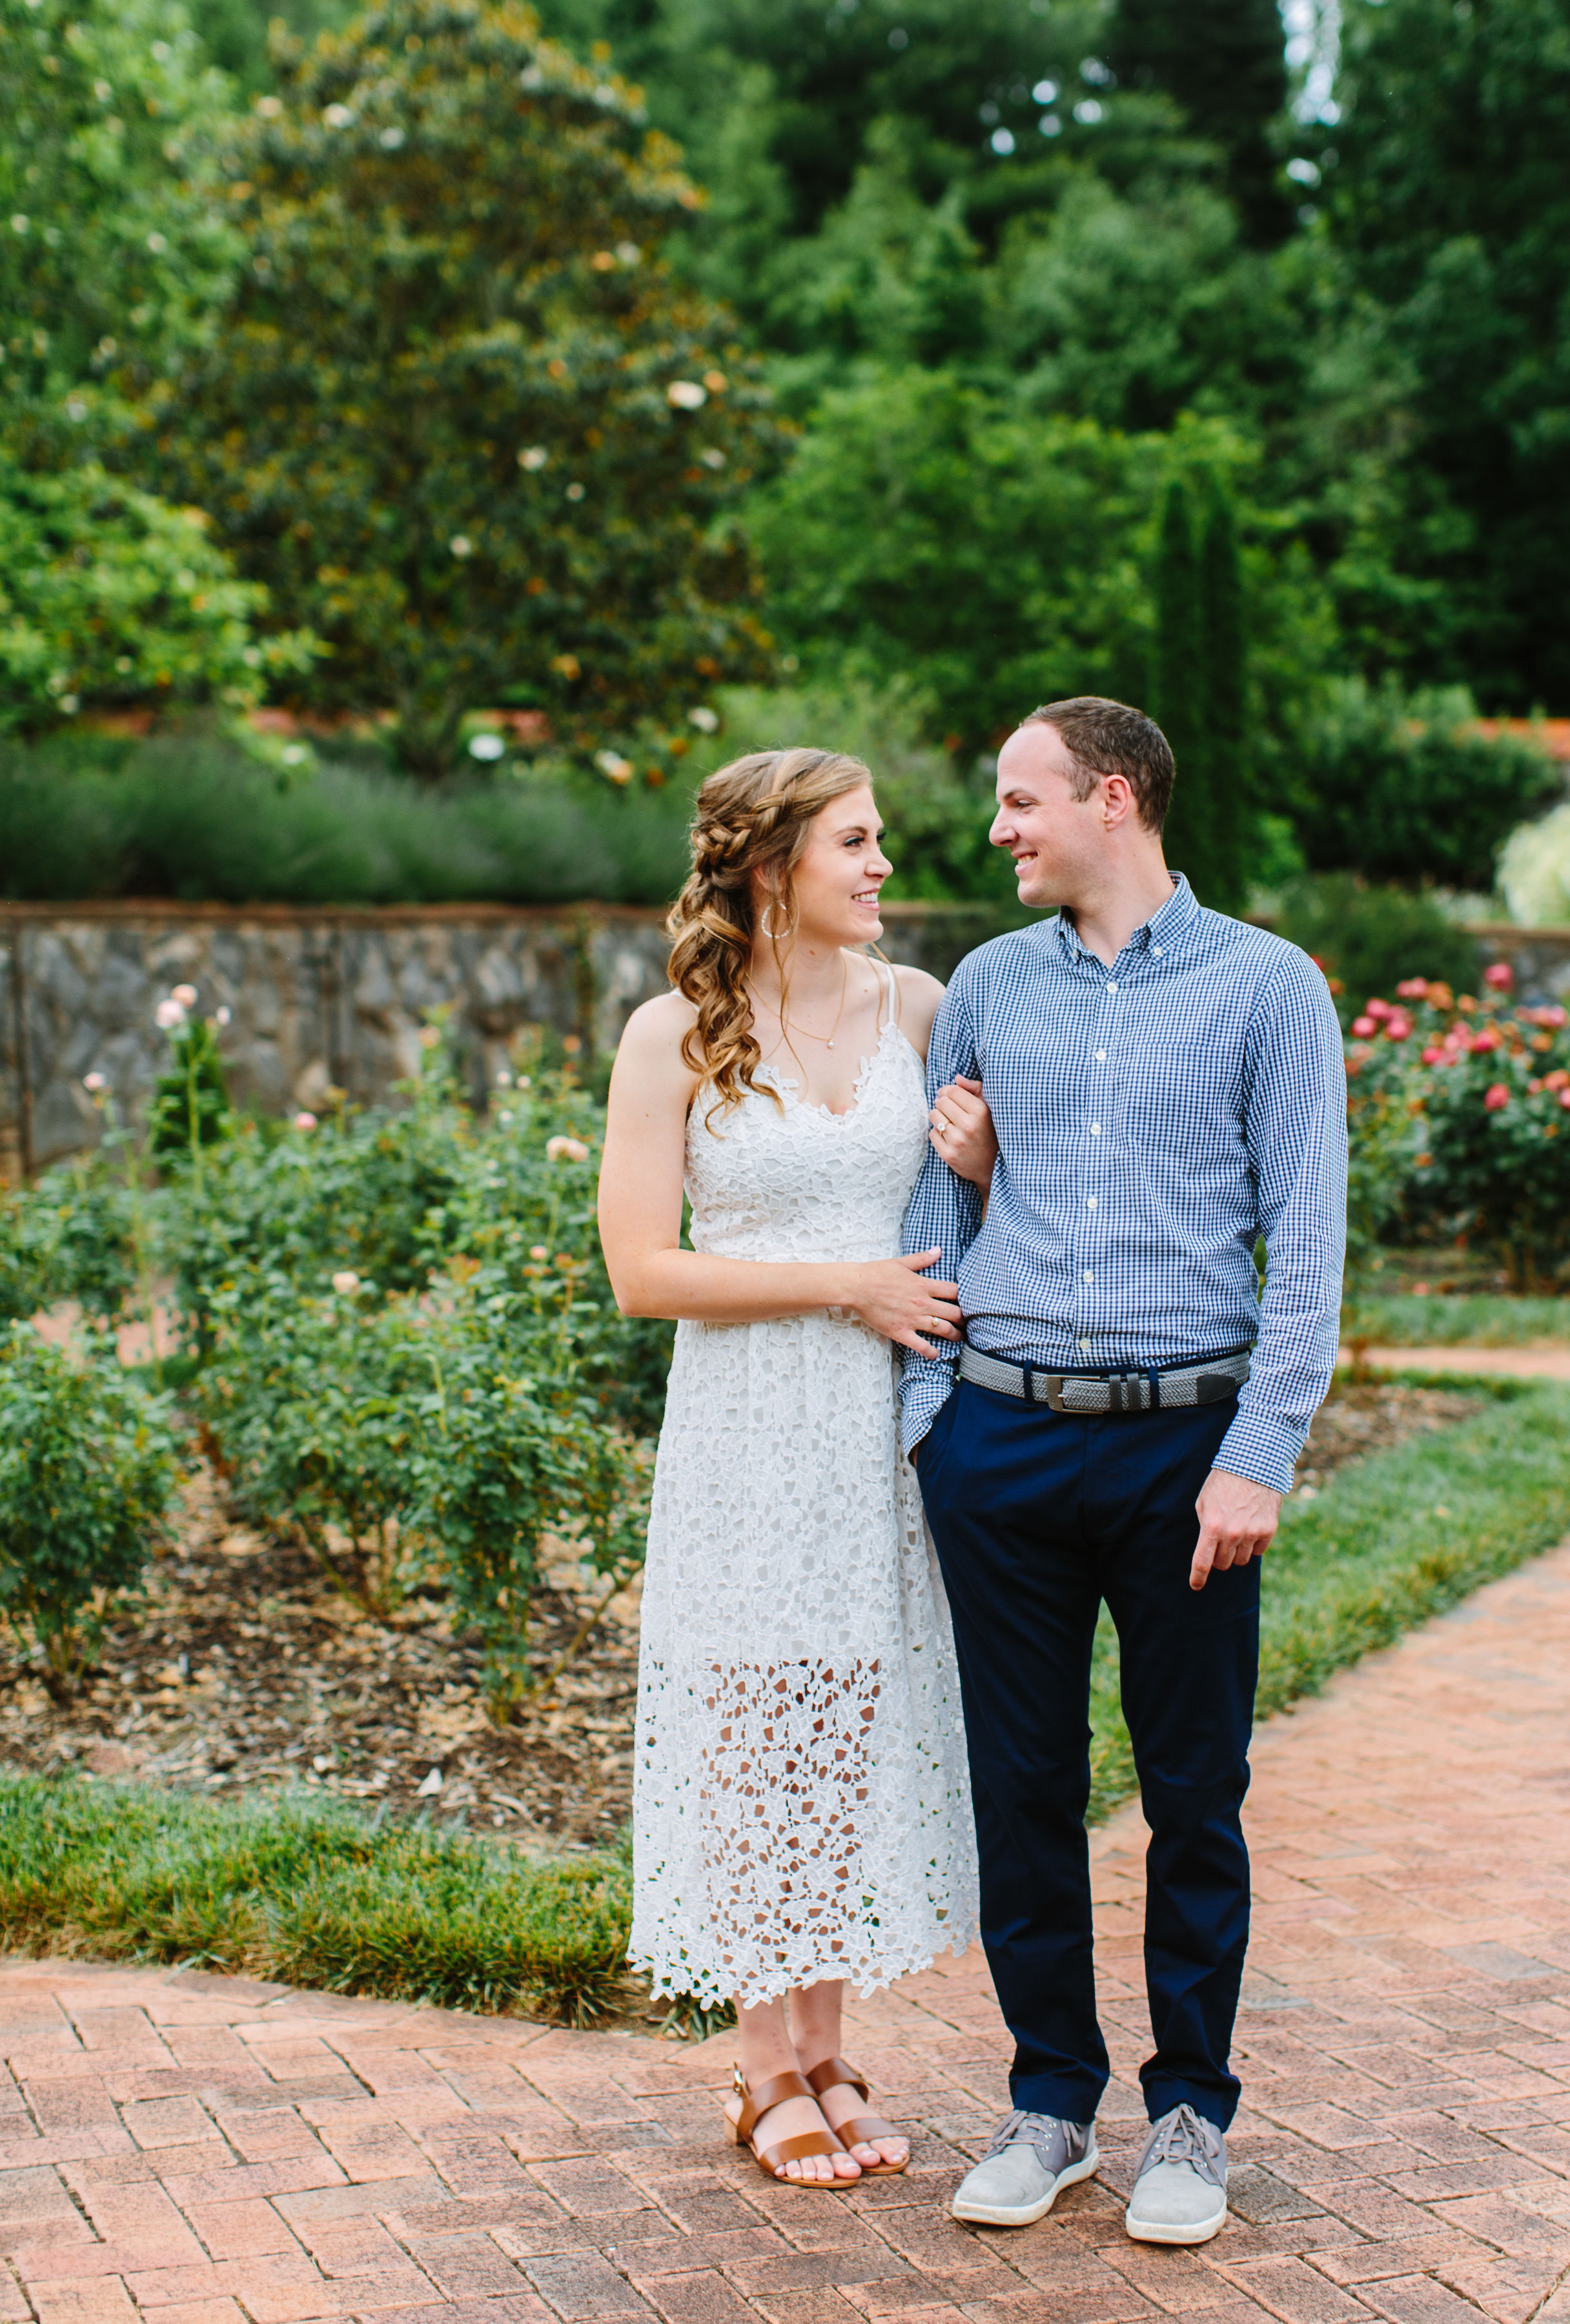 Rainy day engagement session at the Biltmore estates by Suzy Collins Photography